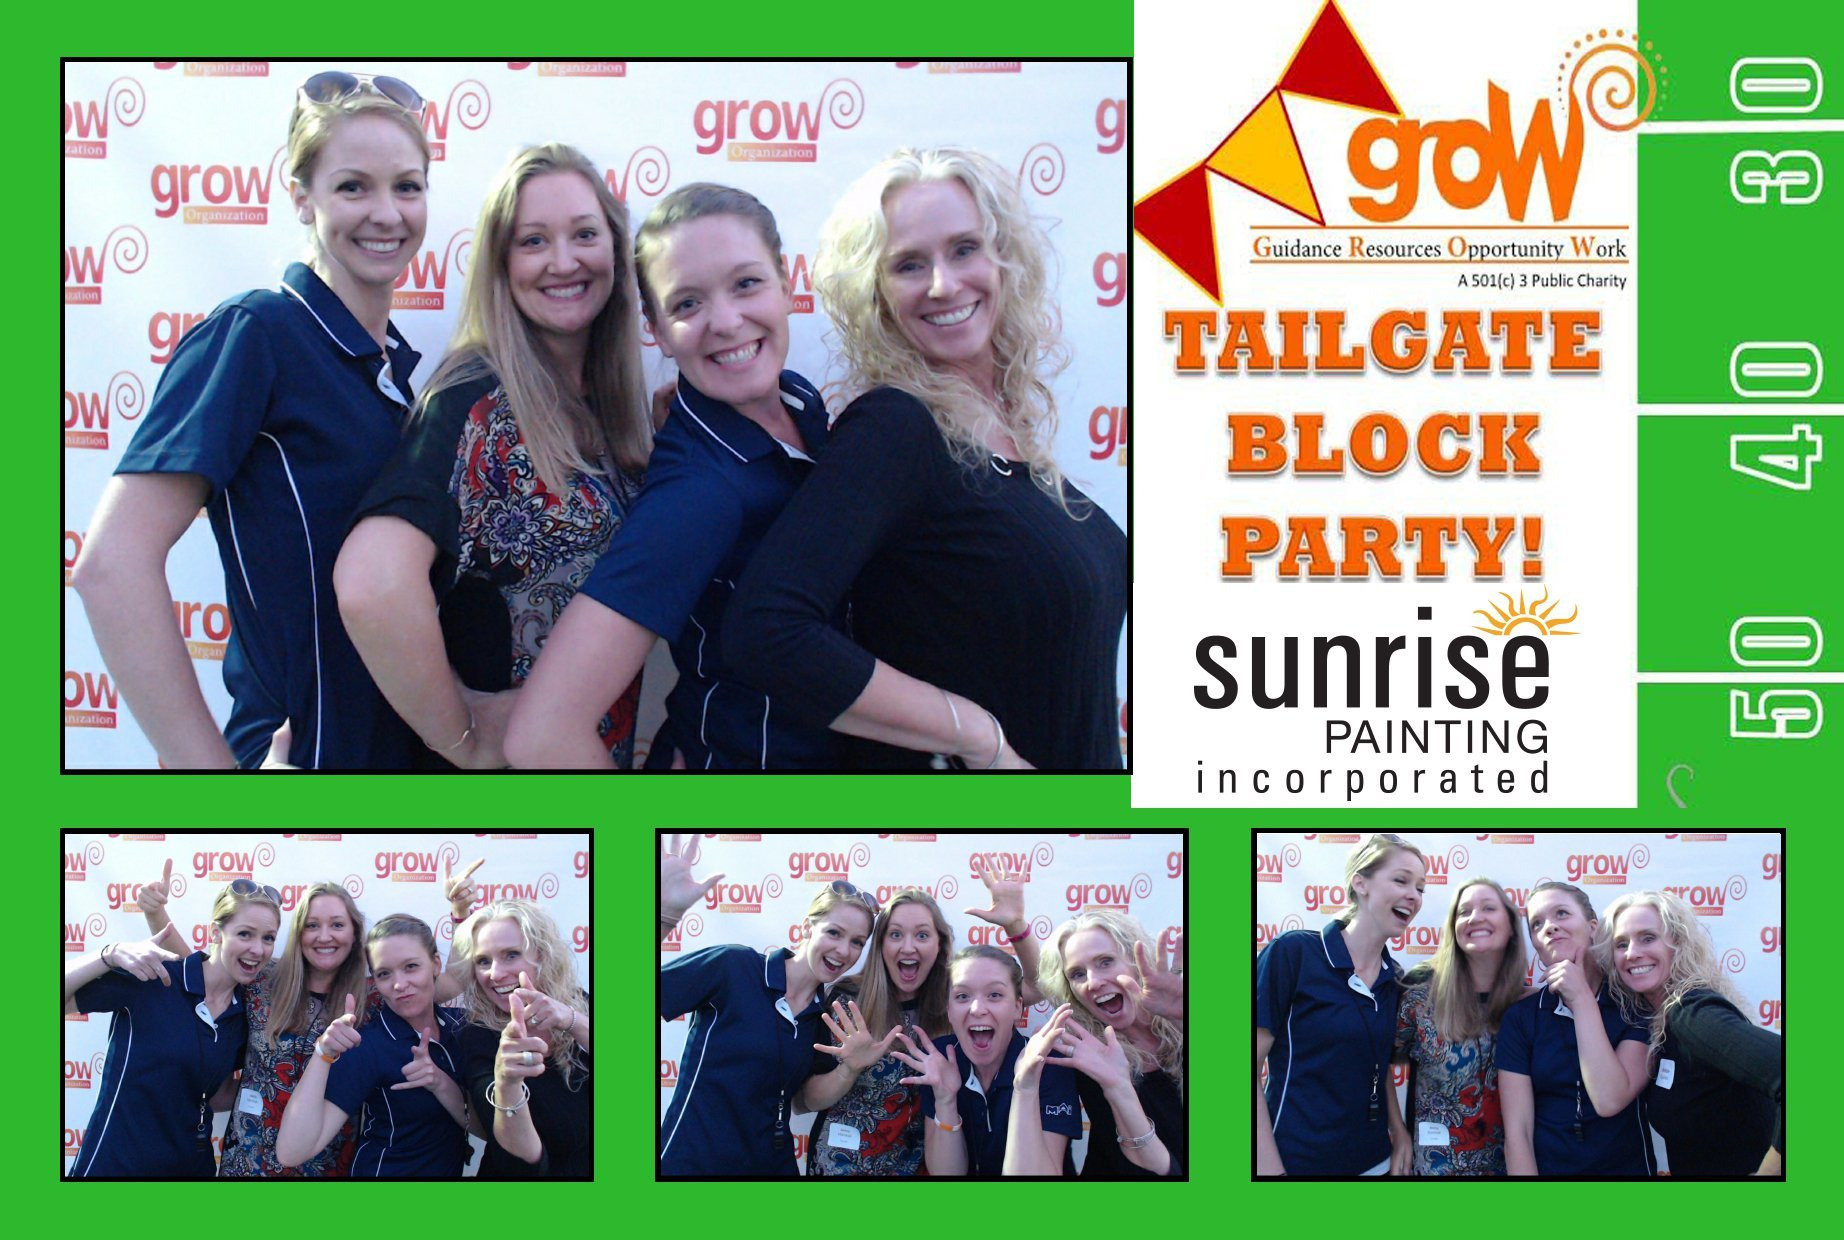 Green Screen Photos for Picnics & Corporate Events